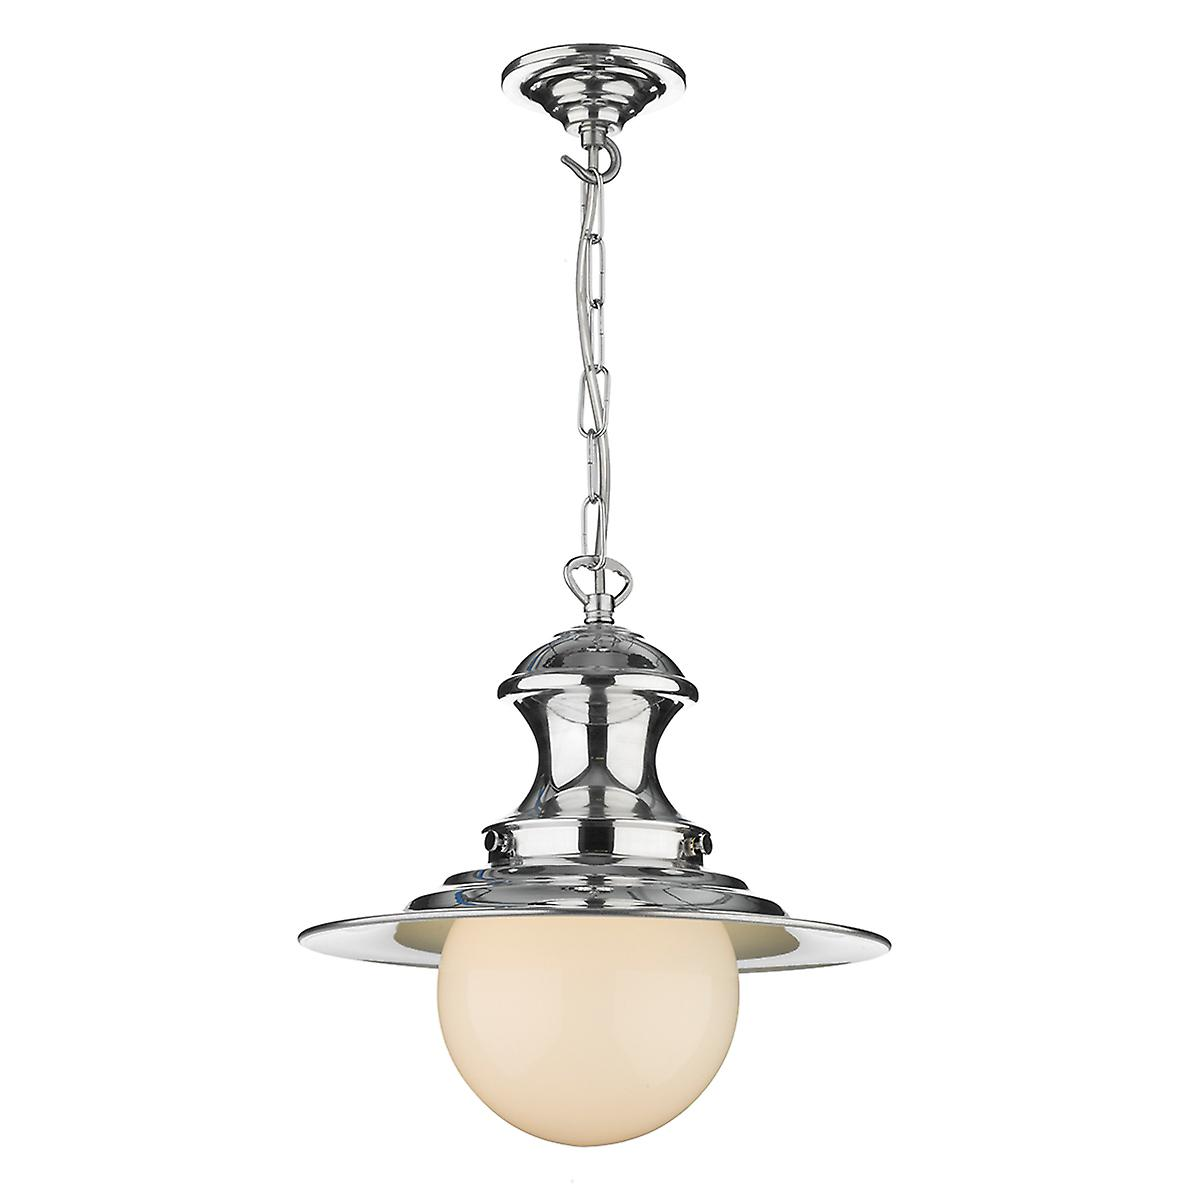 David Hunt EP0150 Station Small Baby Pendant Lamp In Polished Chrome